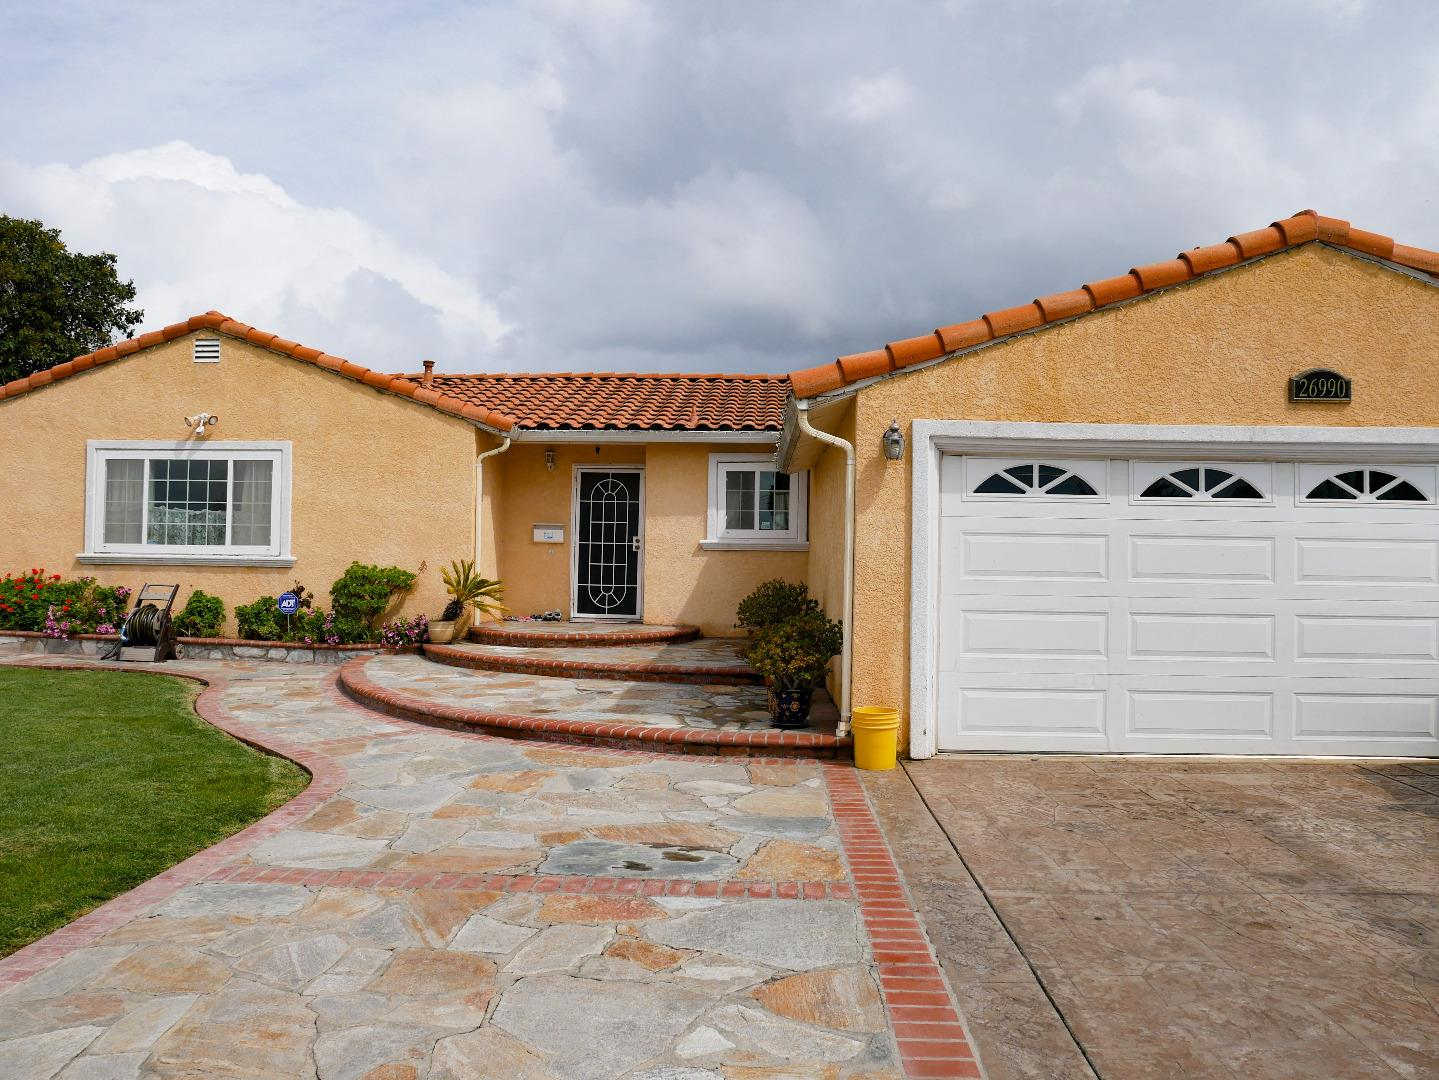 Casa Unifamiliar por un Venta en 26990 Jennings Way Hayward, California 94544 Estados Unidos